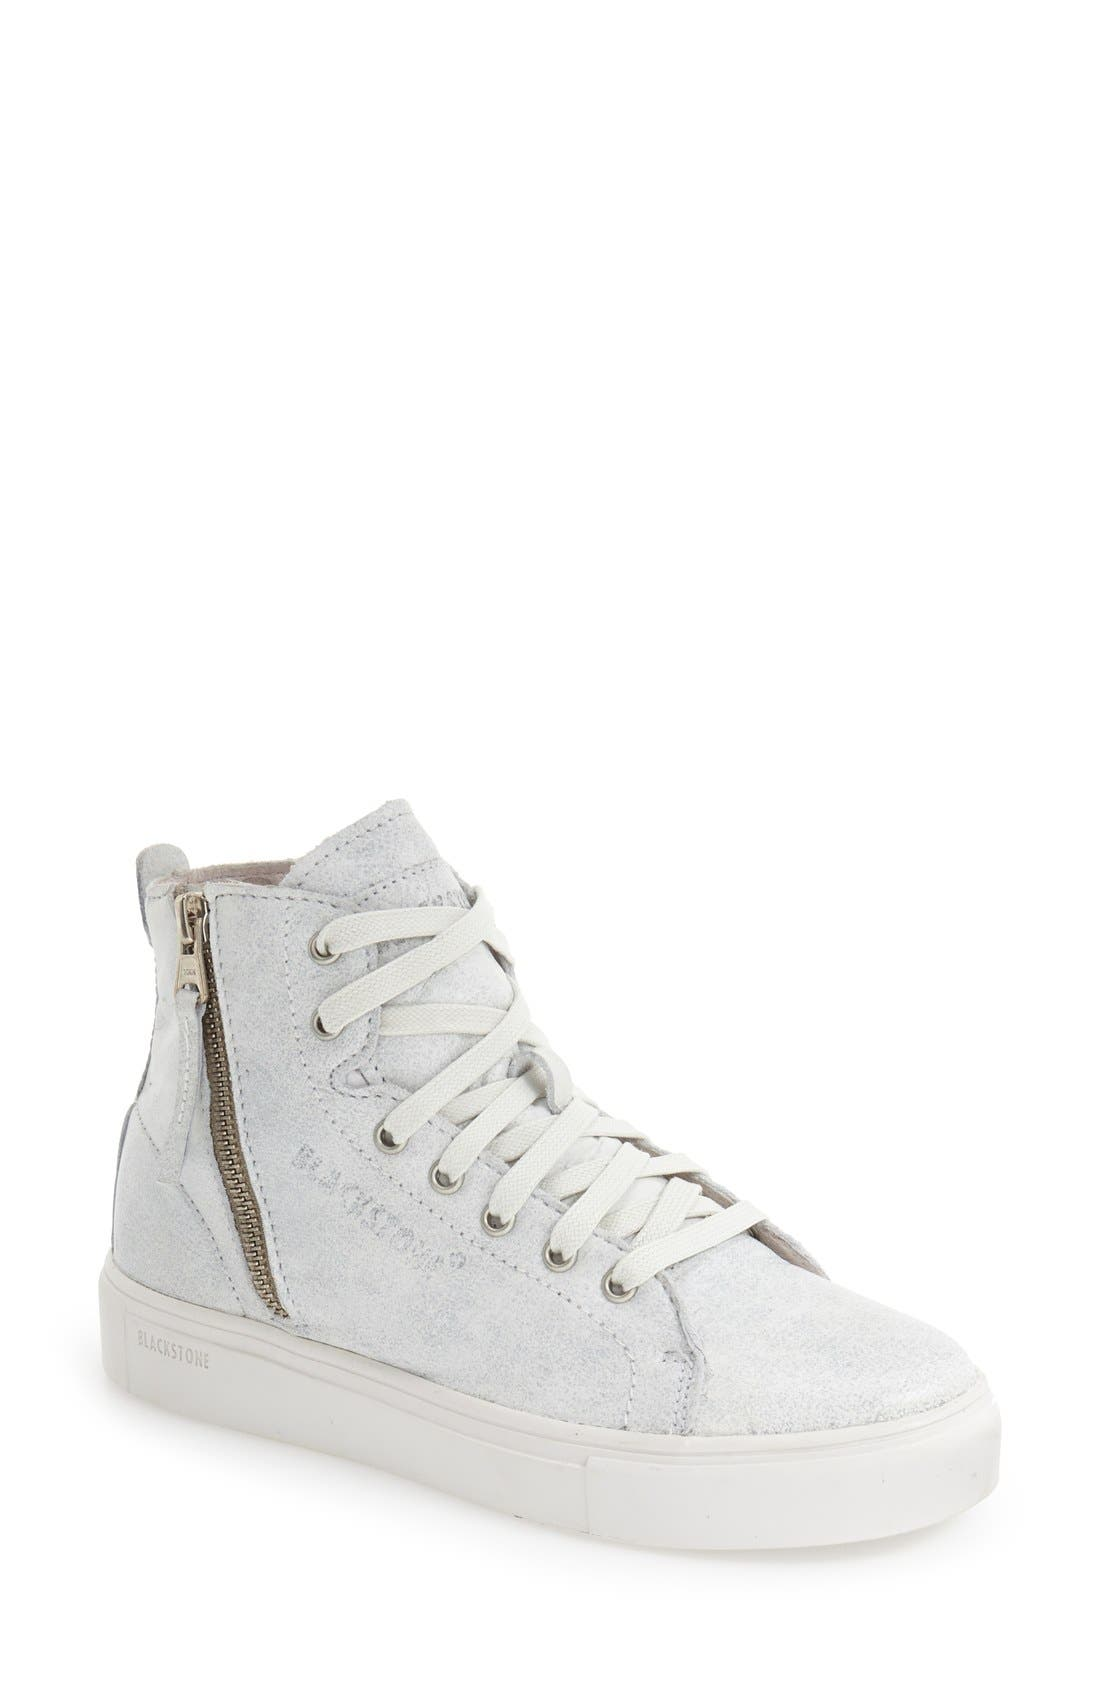 'LL65' High Top Sneaker,                         Main,                         color, 100